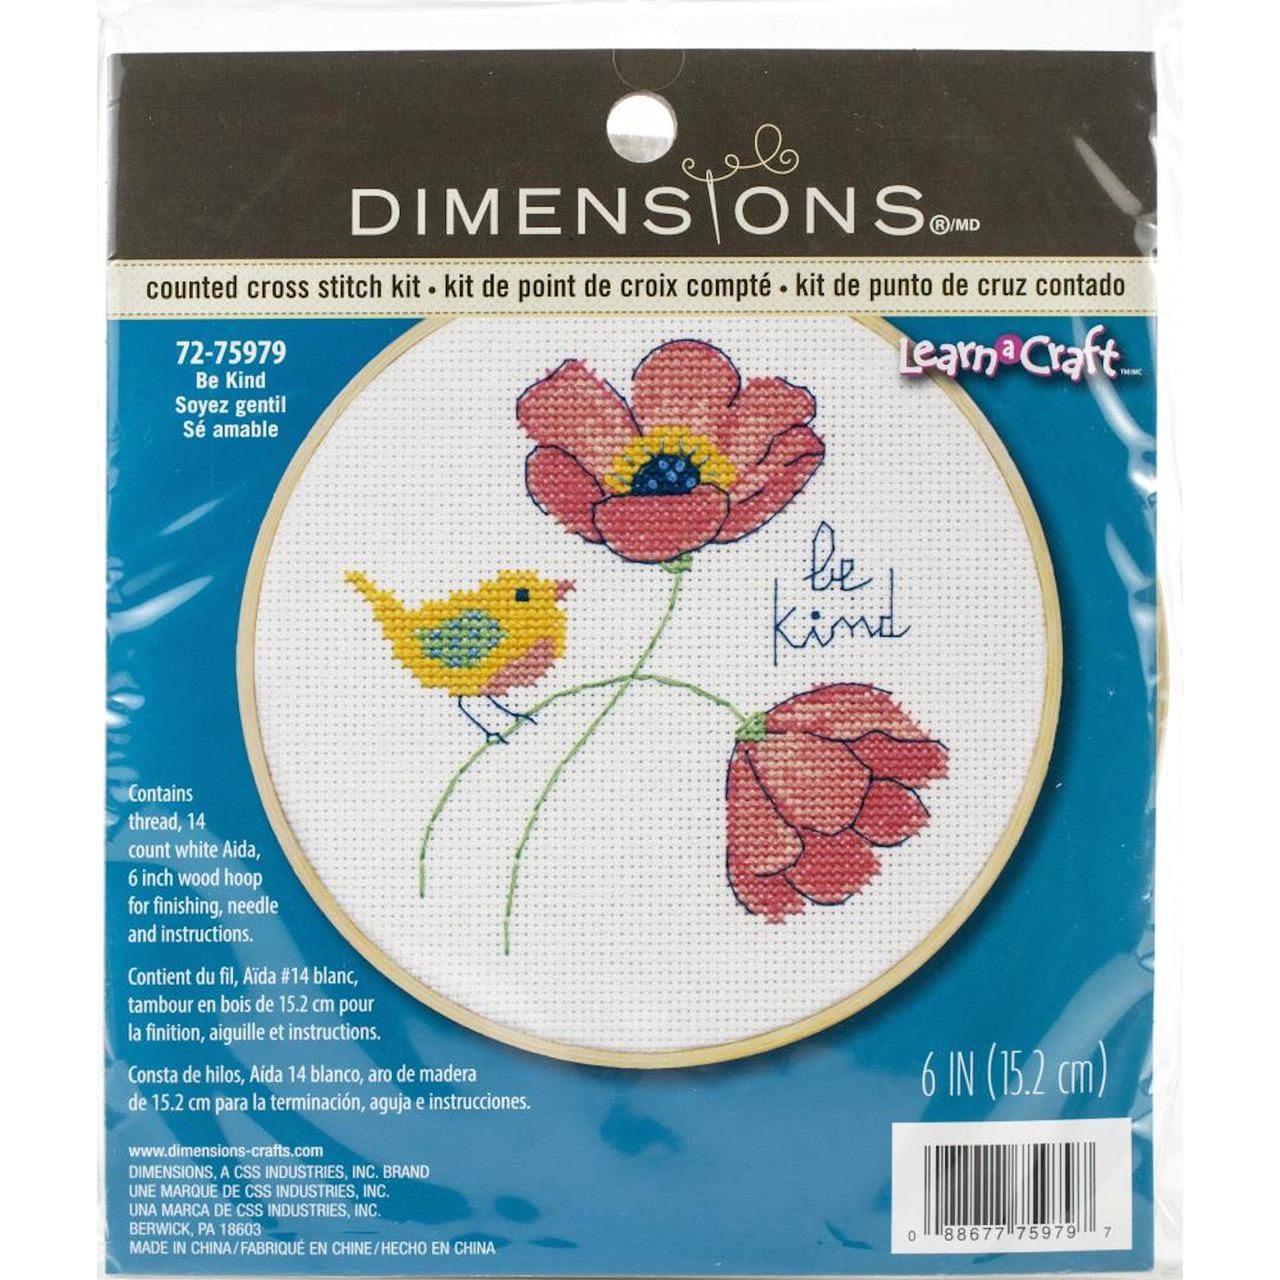 Dimensions Learn a Craft - Be Kind